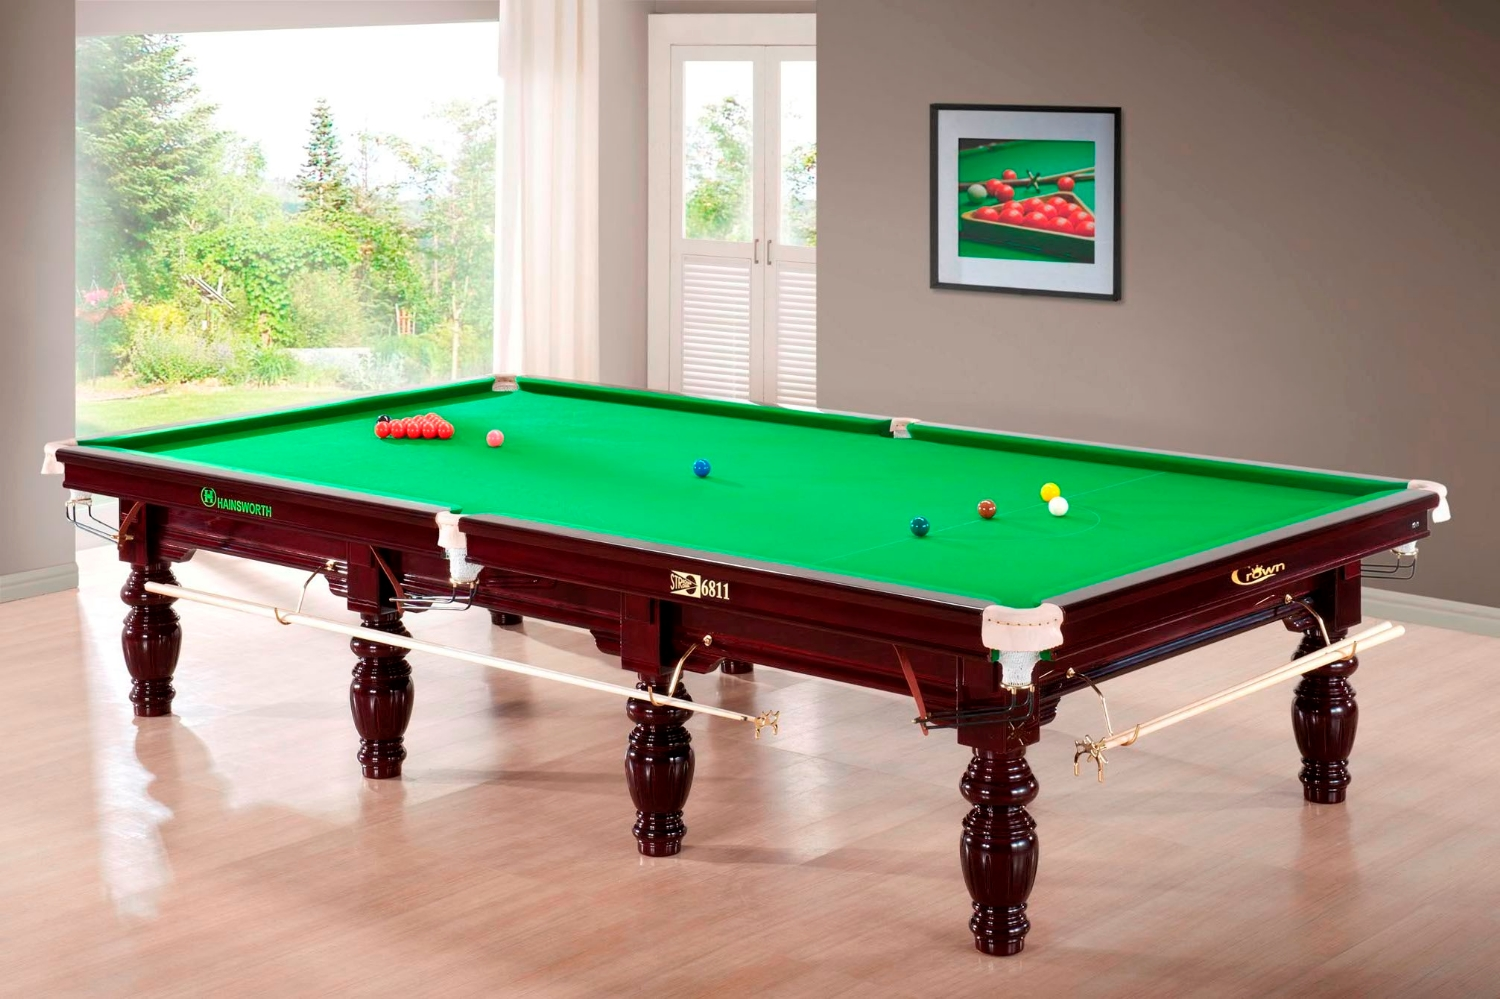 crown snooker 12ft full size pool table malaysia table